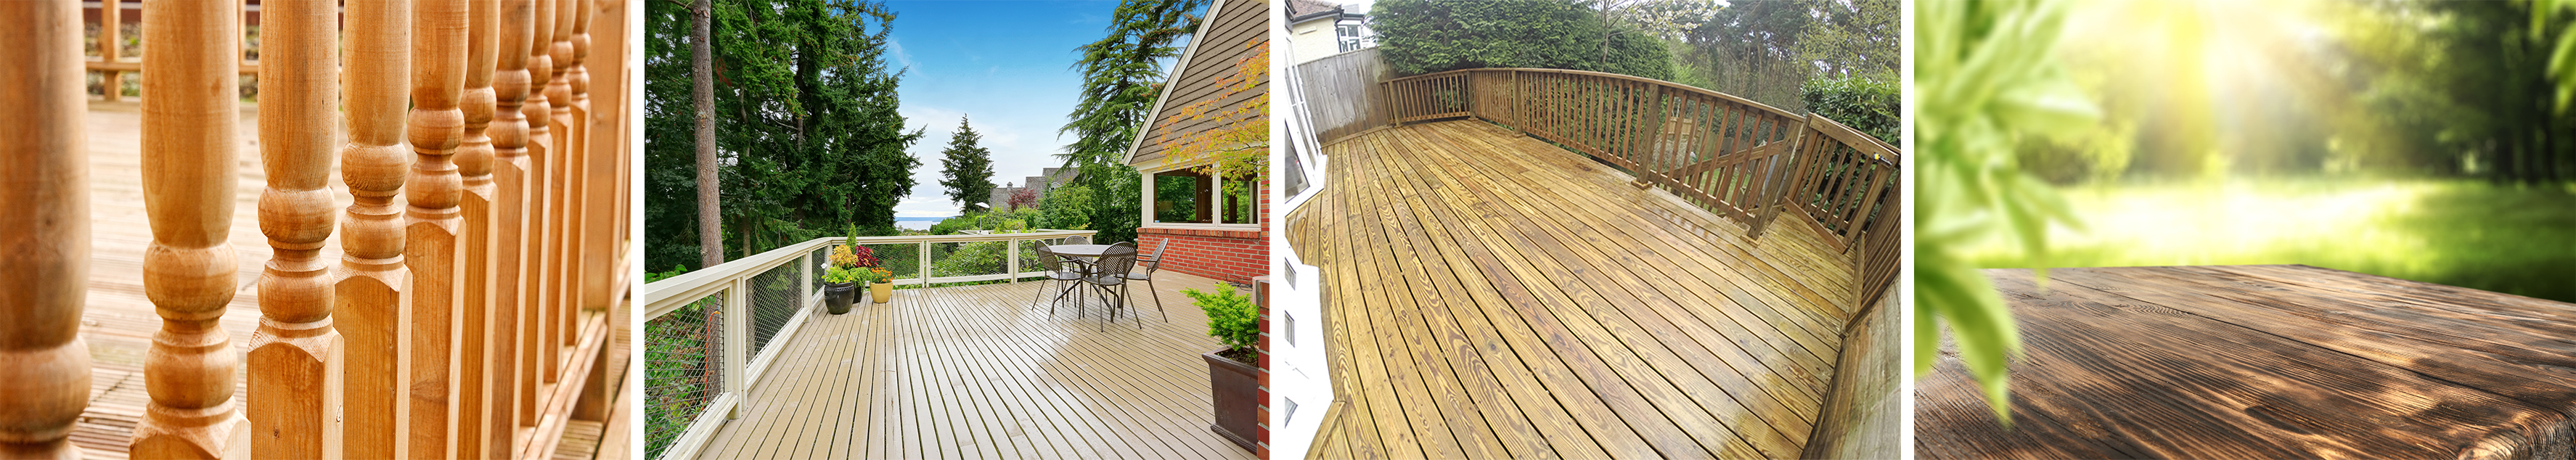 Decking Cleaning Services in Christchurch, Dorset